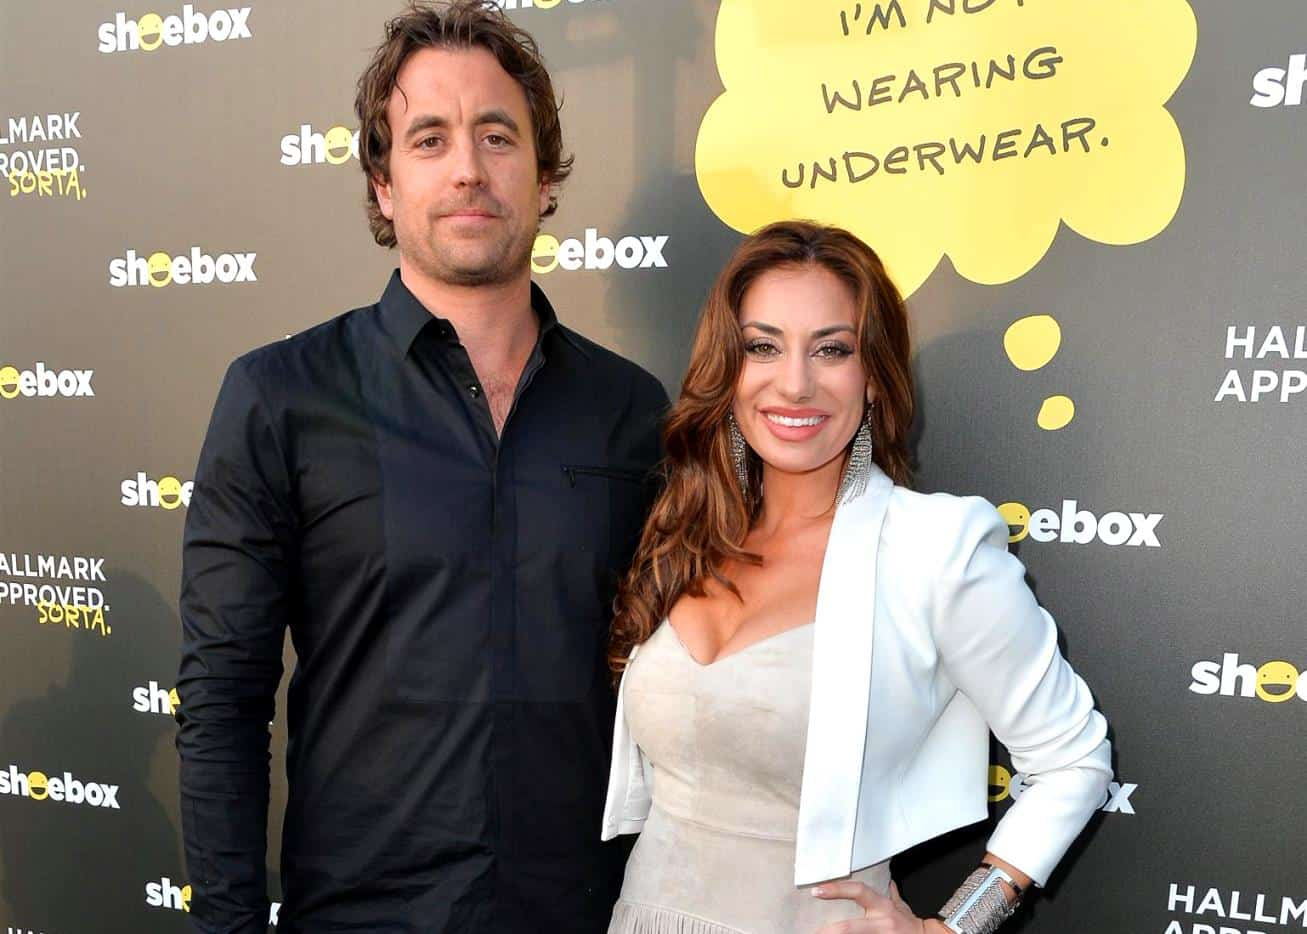 RHOC Christian Rovsek and Lizzie Rovsek Divorce